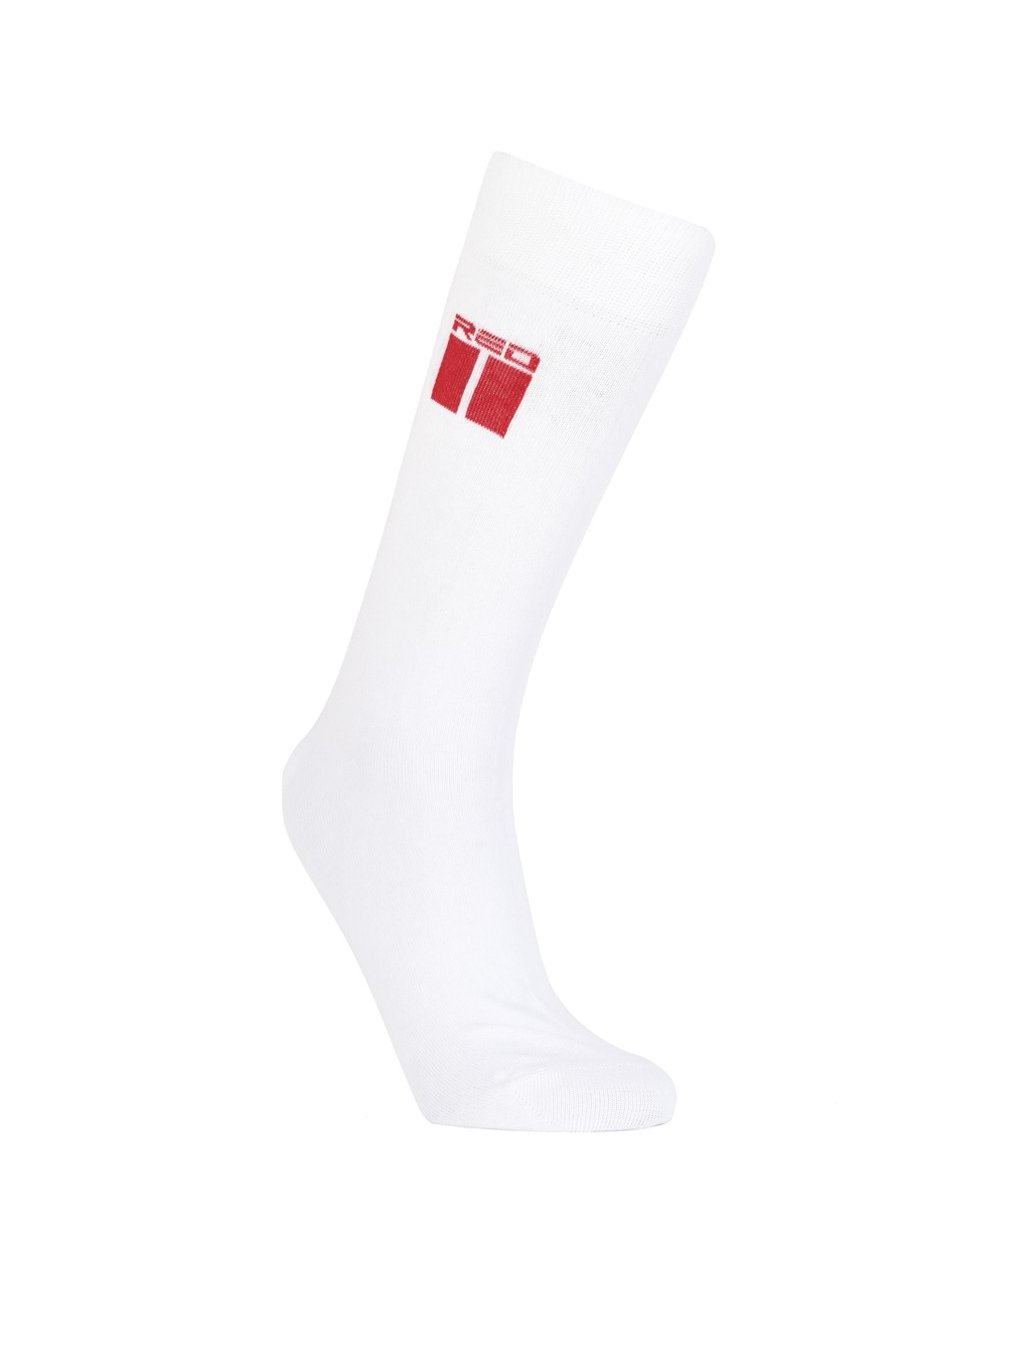 Ponožky DOUBLE RED THE RED SOCKS White